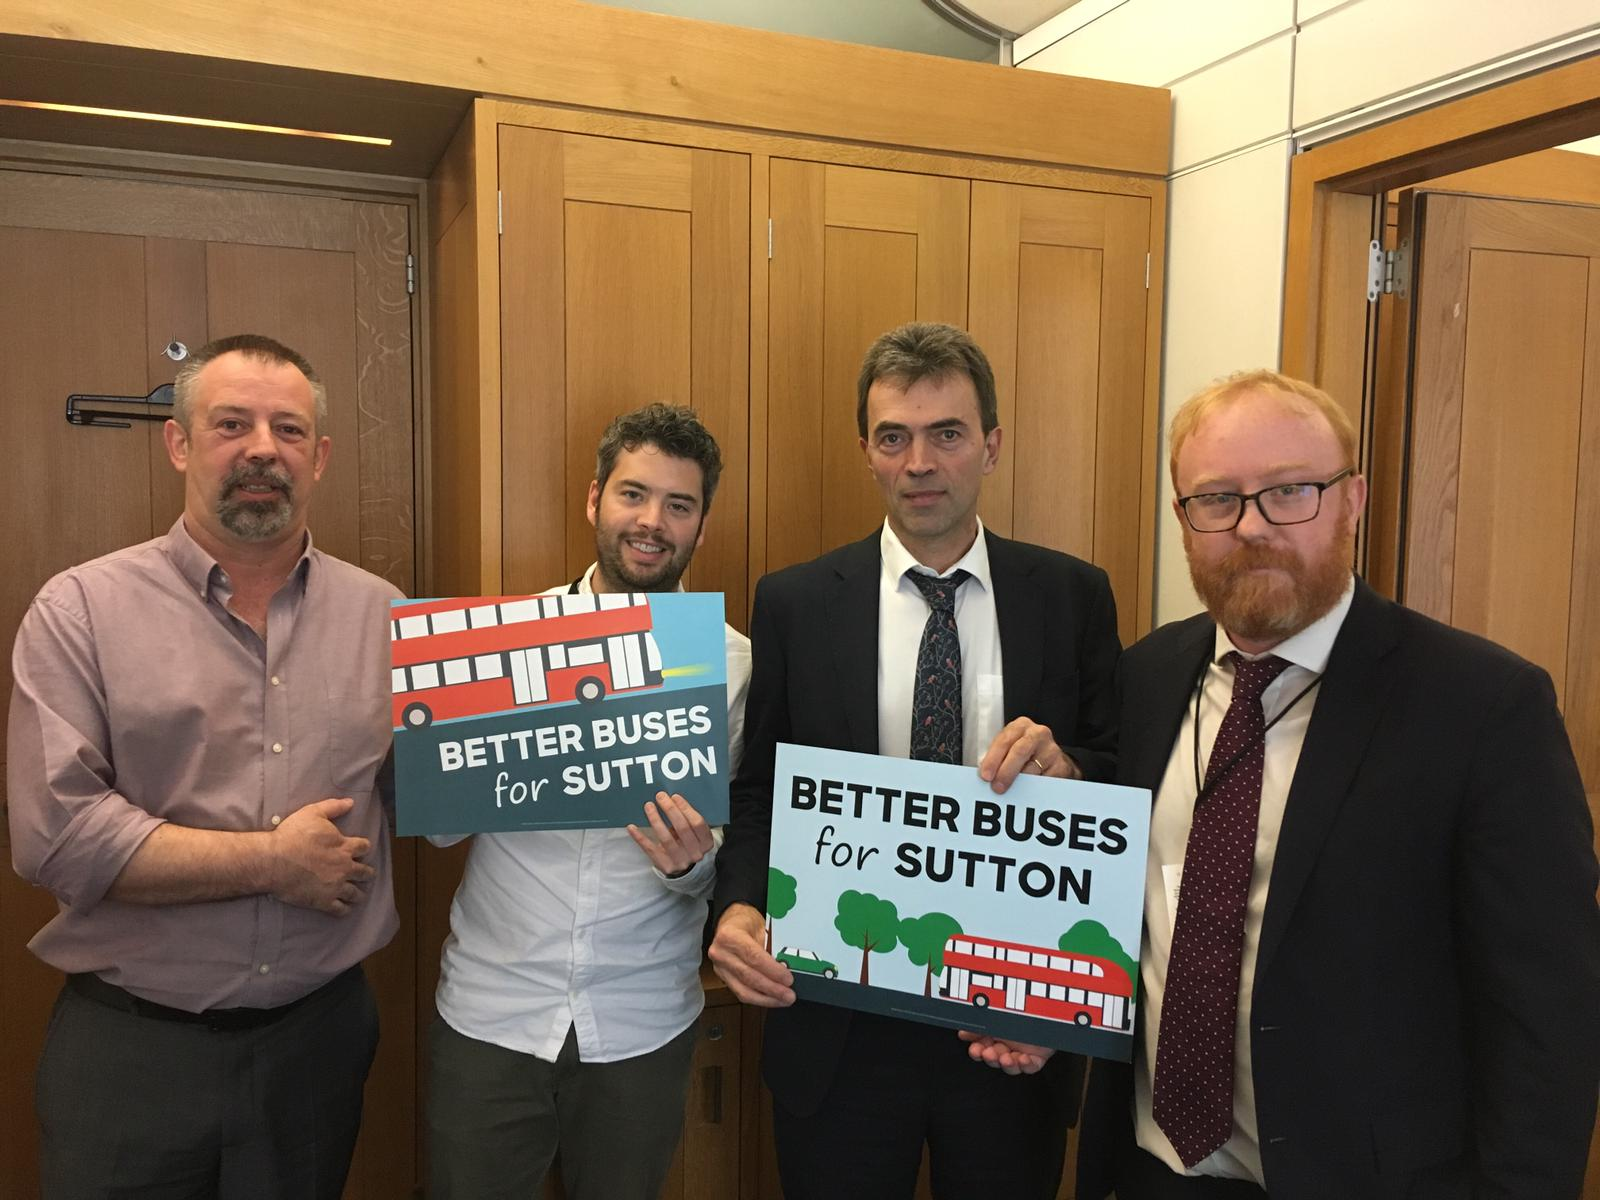 Brake and the Lib Dems demand ''Better Buses for Sutton''